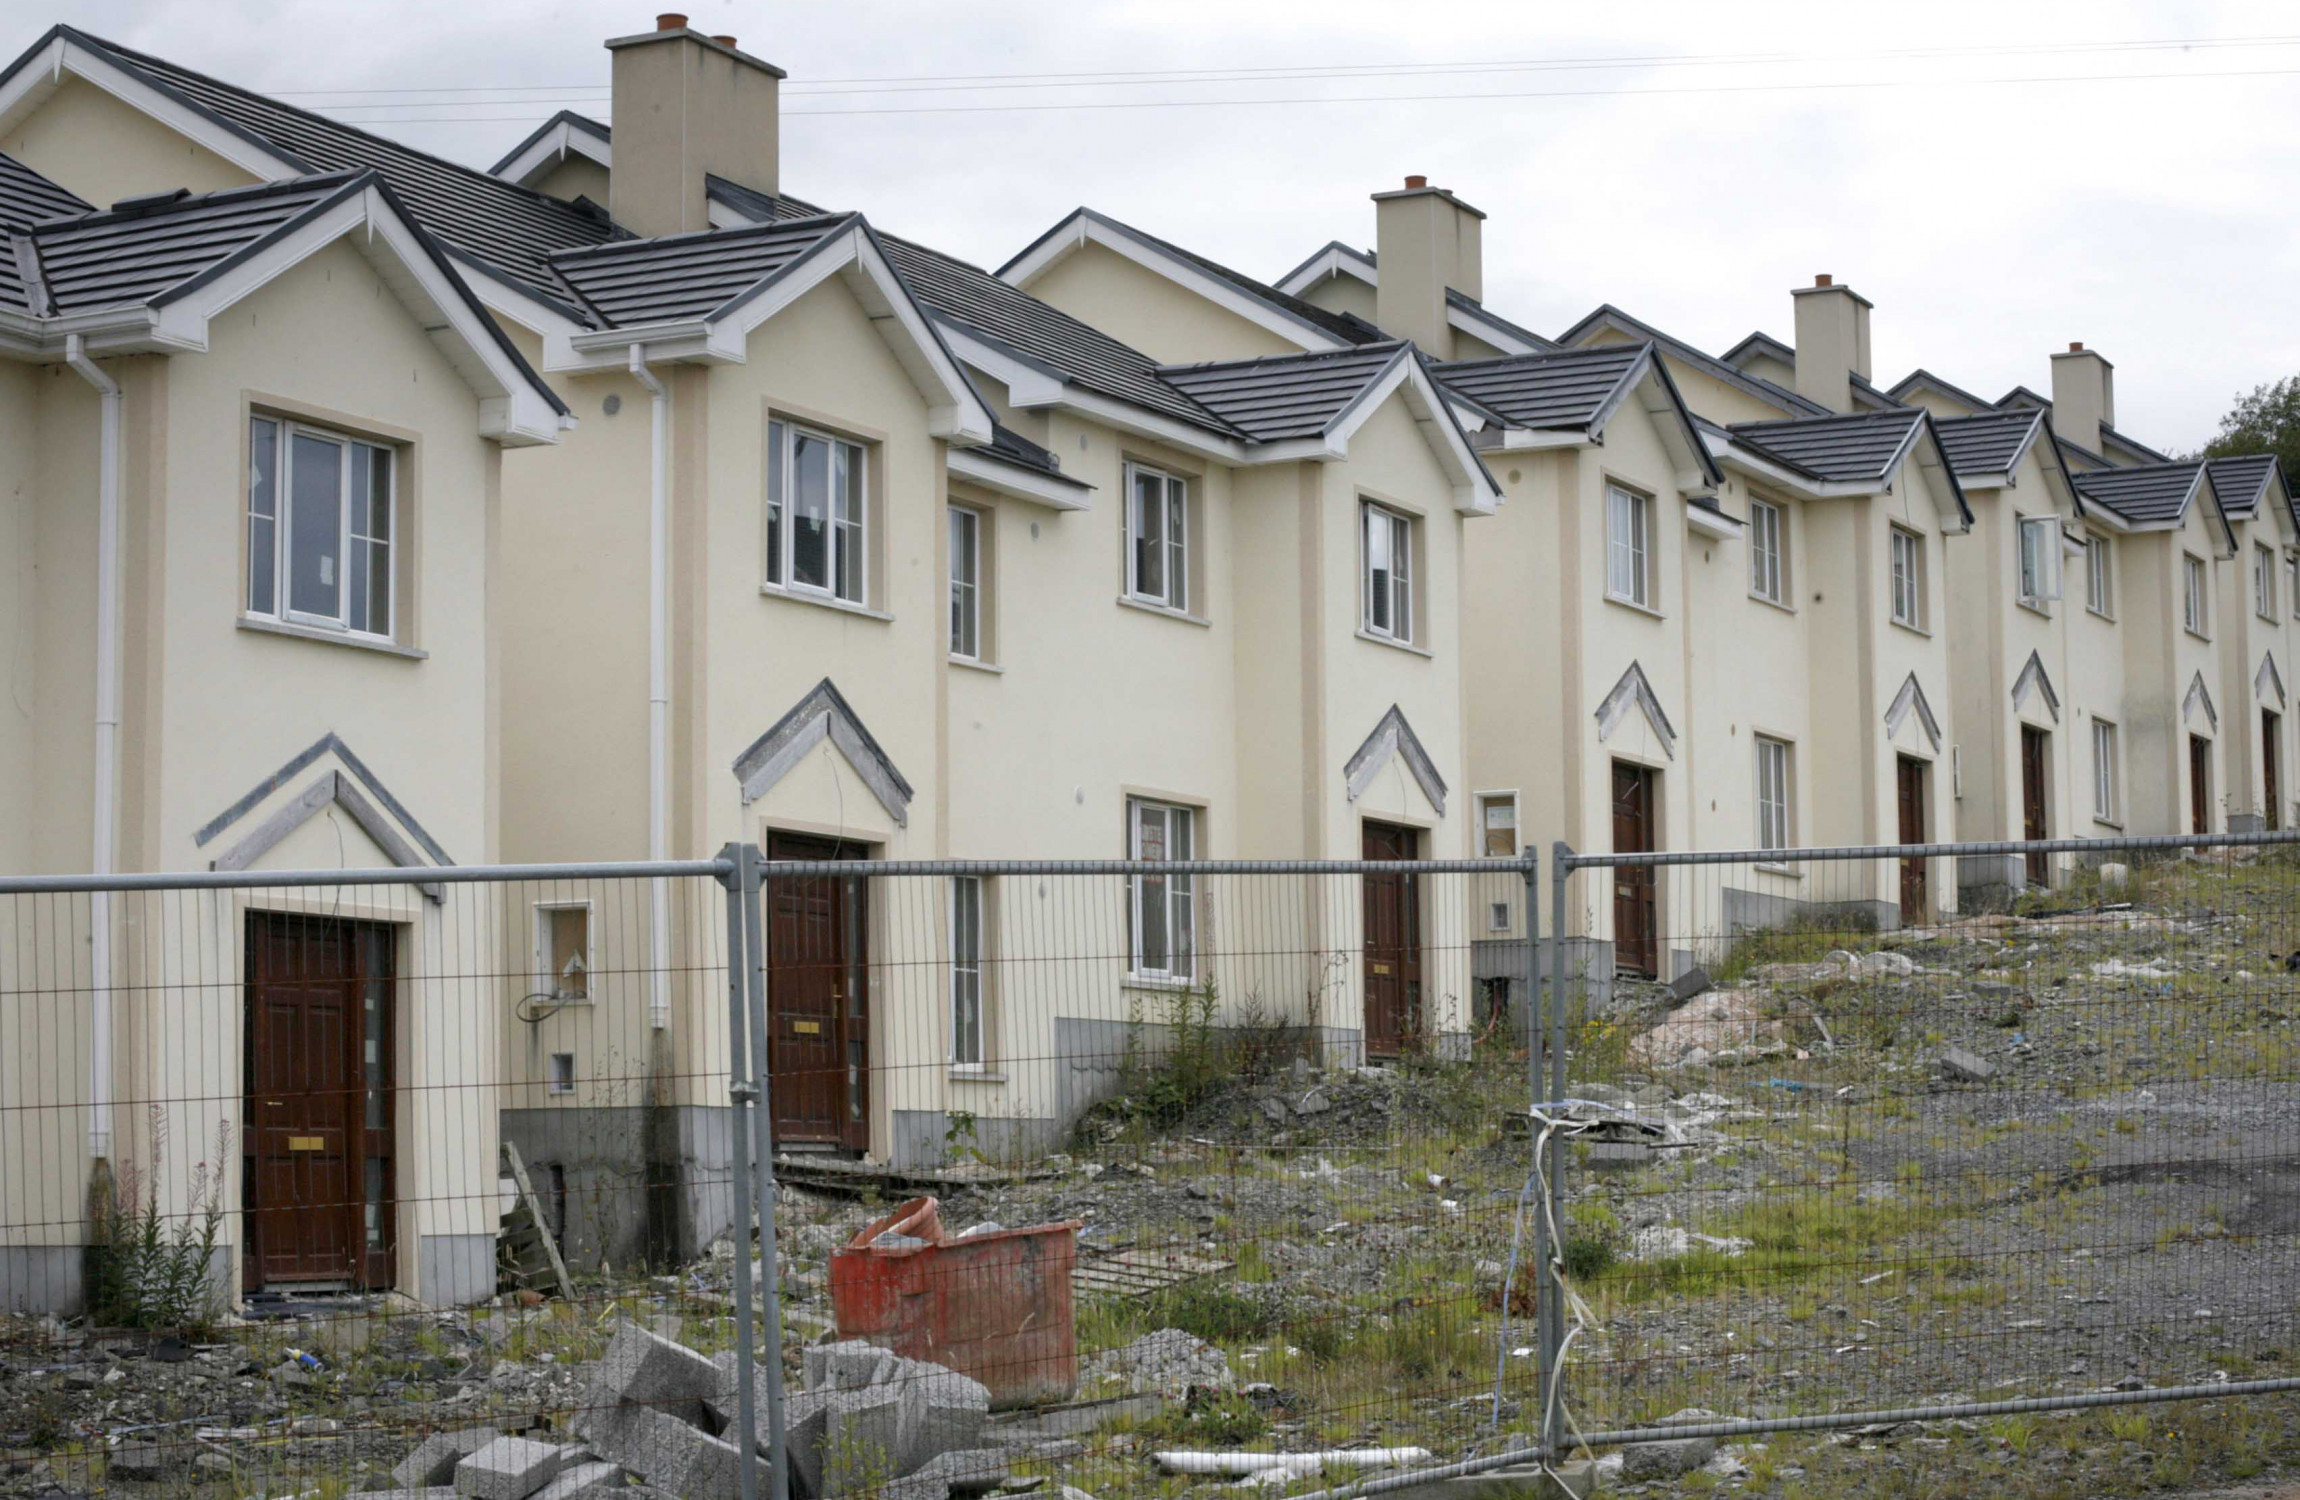 'Penalties are coming': Minister puts householders with vacant second home on notice